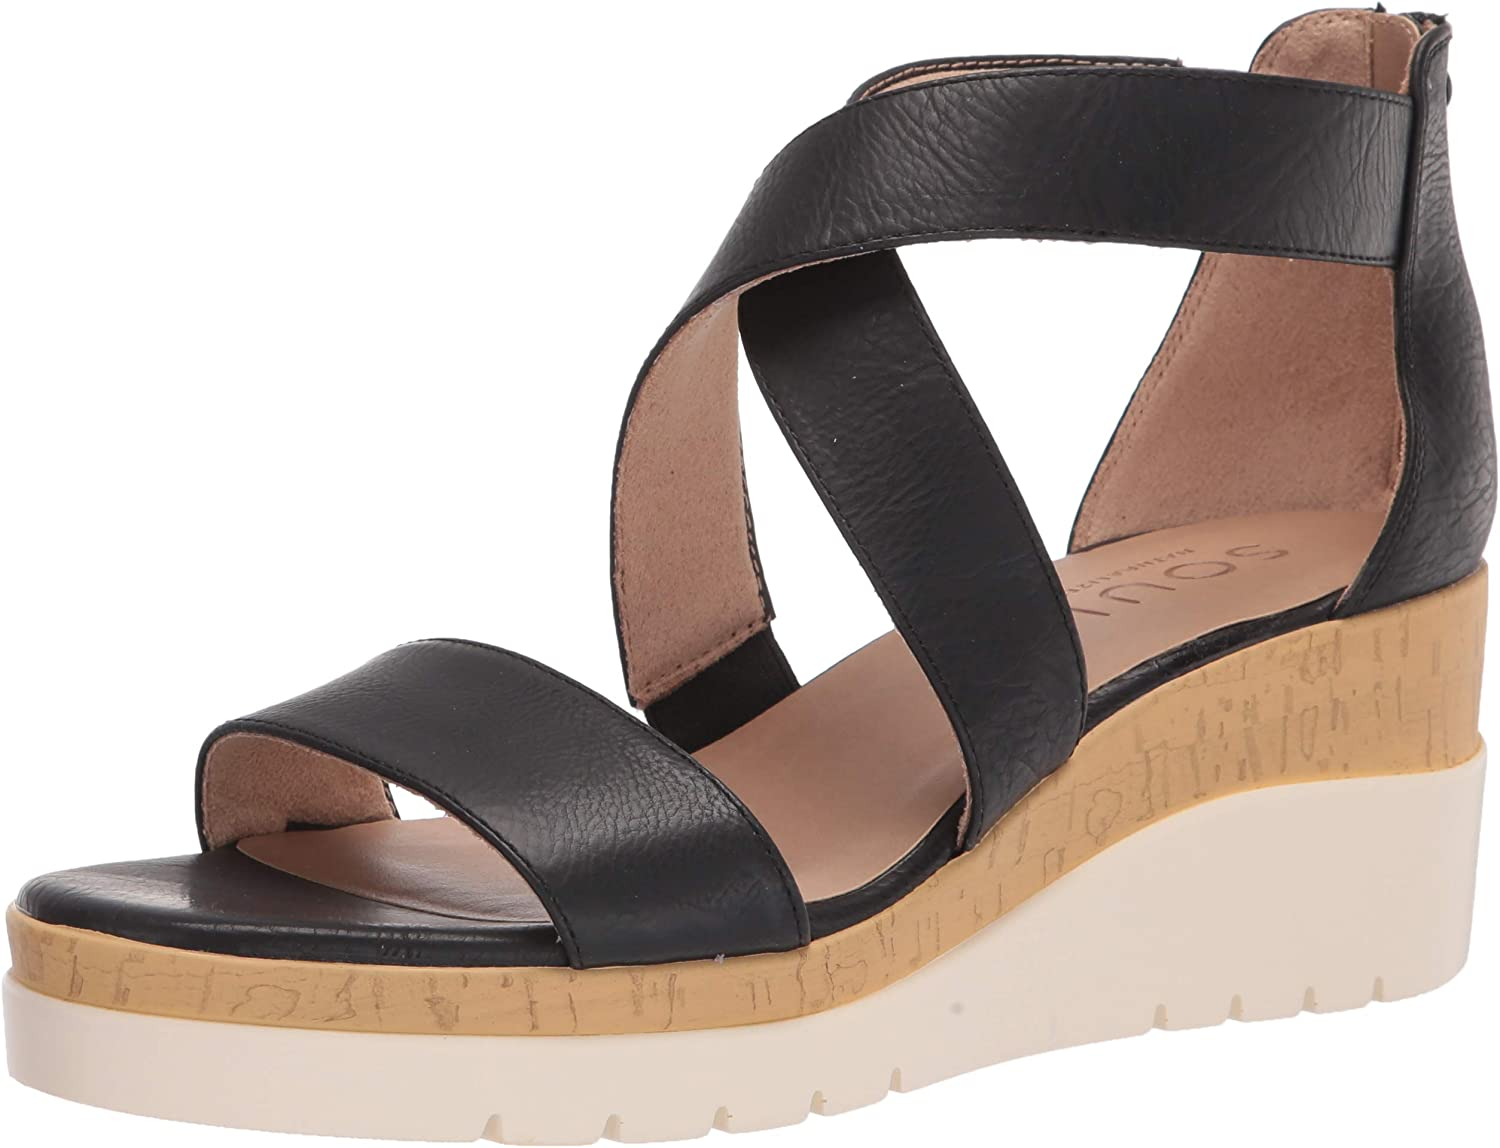 SOUL Popularity Naturalizer Women's Sandal Wedge Goodtimes Max 55% OFF